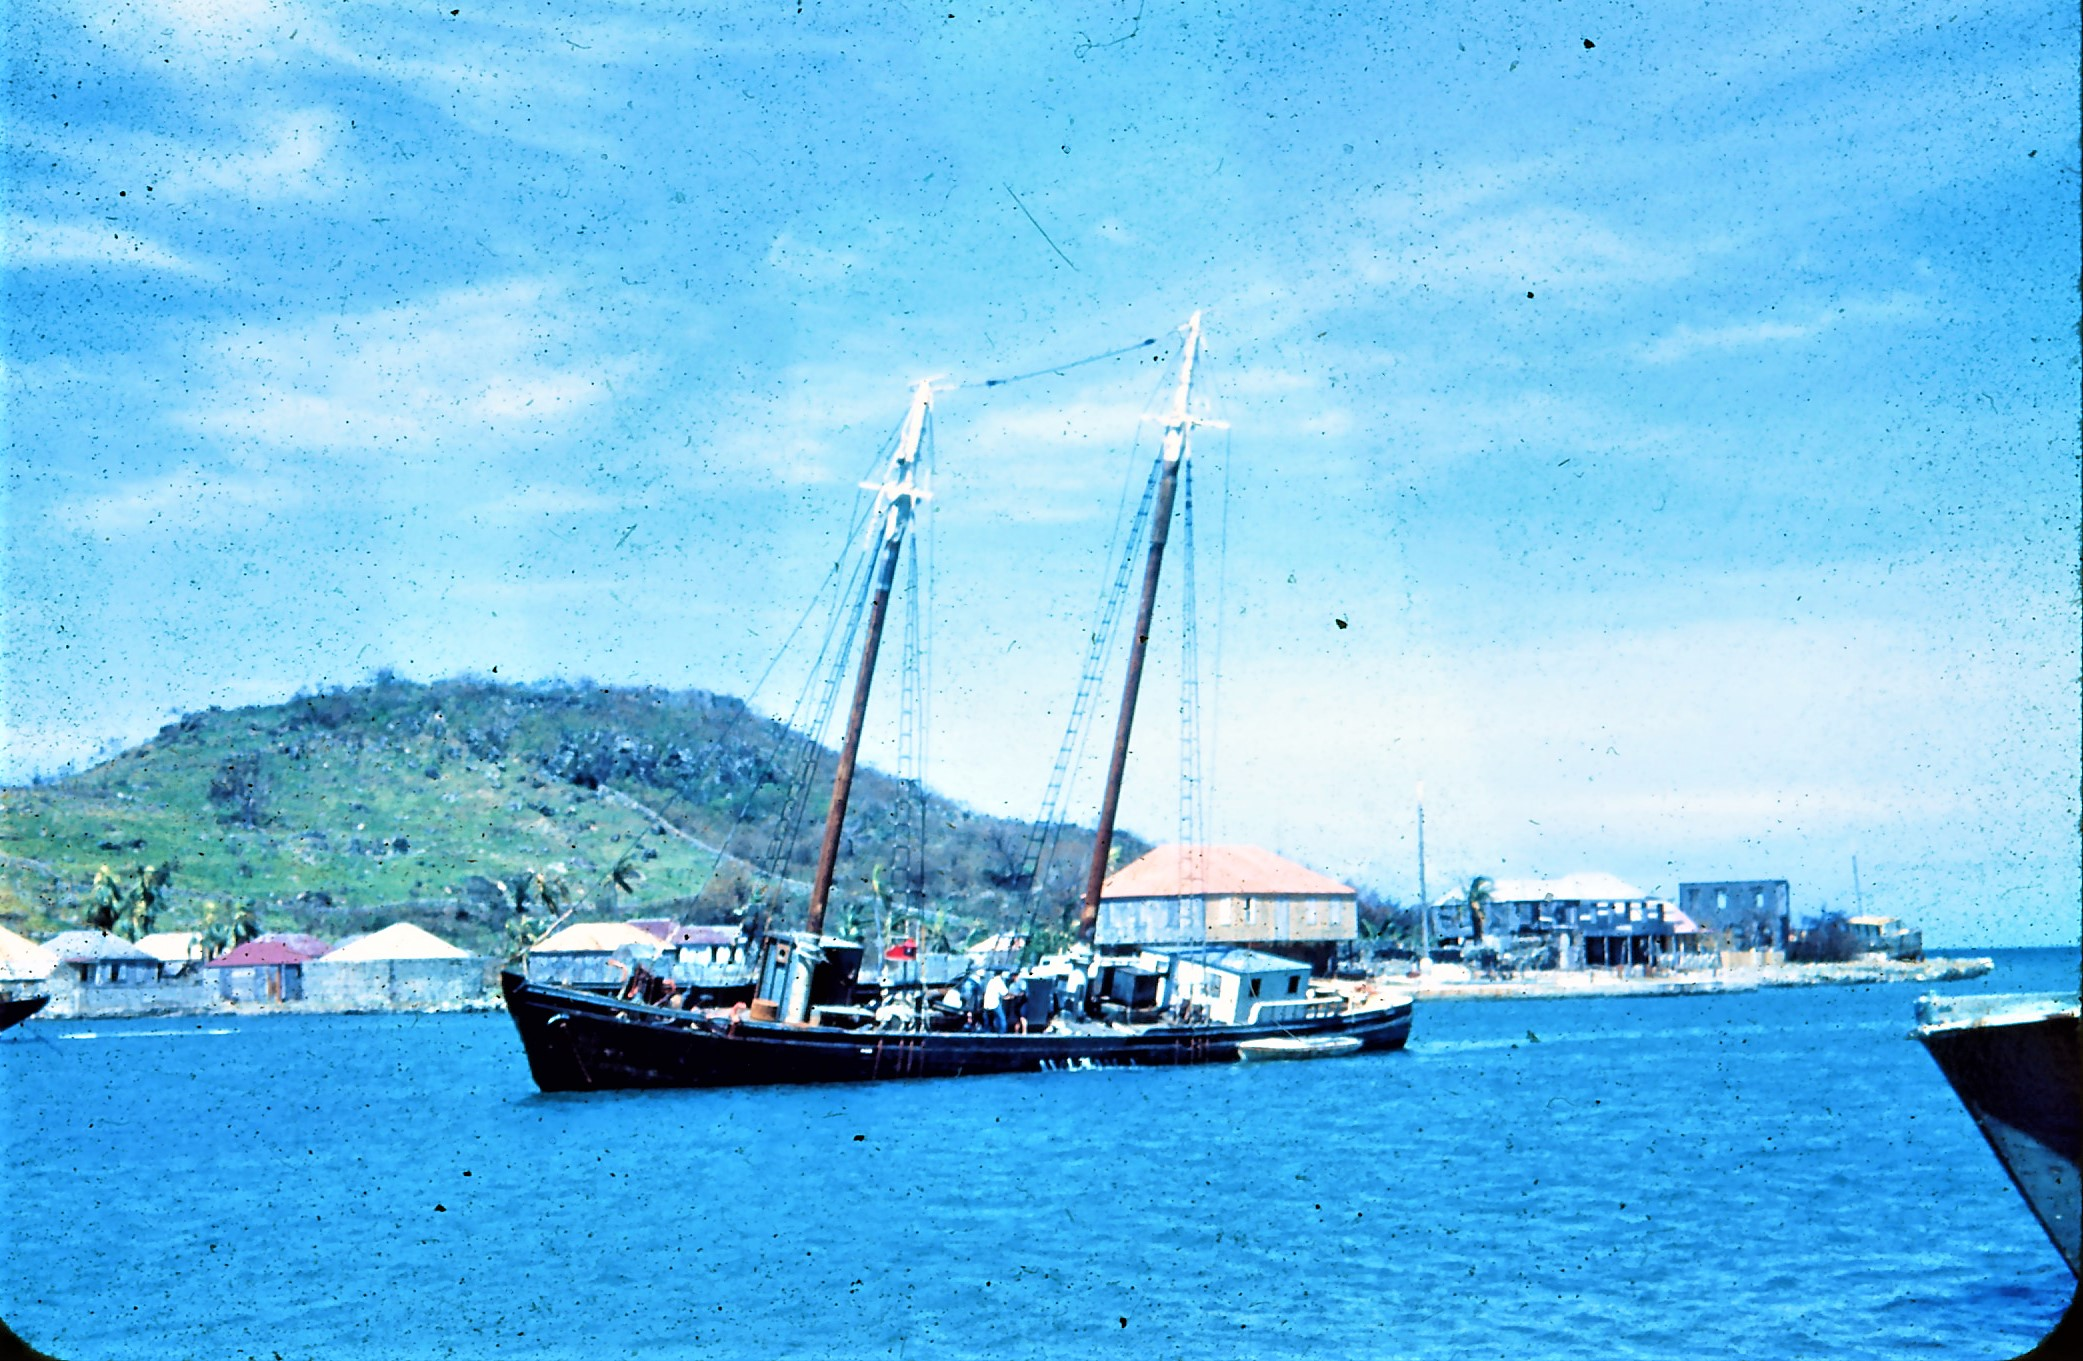 Schooner Roma with Charles Thomas Barnes' home in background.